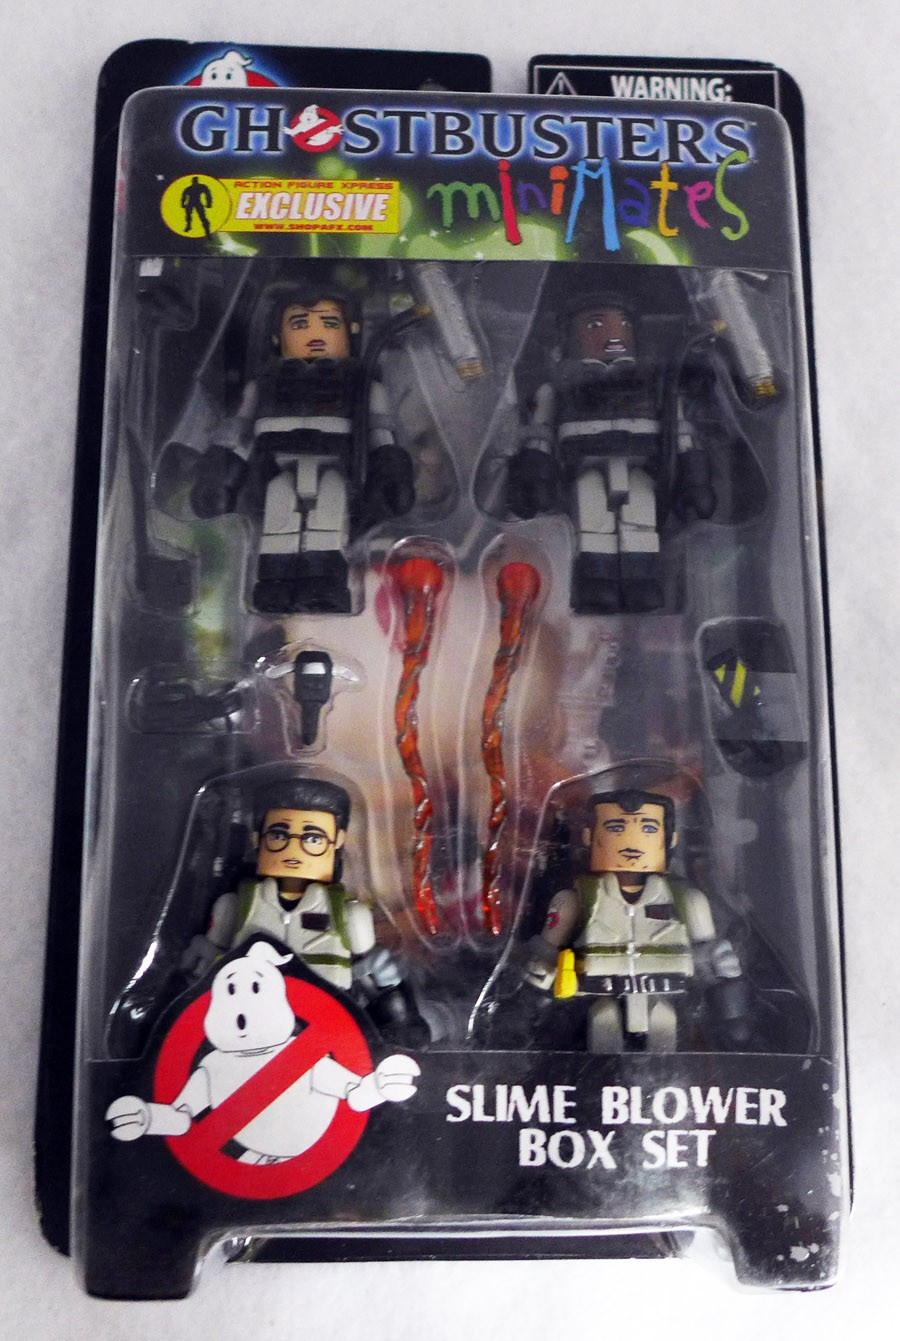 Ghostbusters Slime Blowers Minimates Box Set